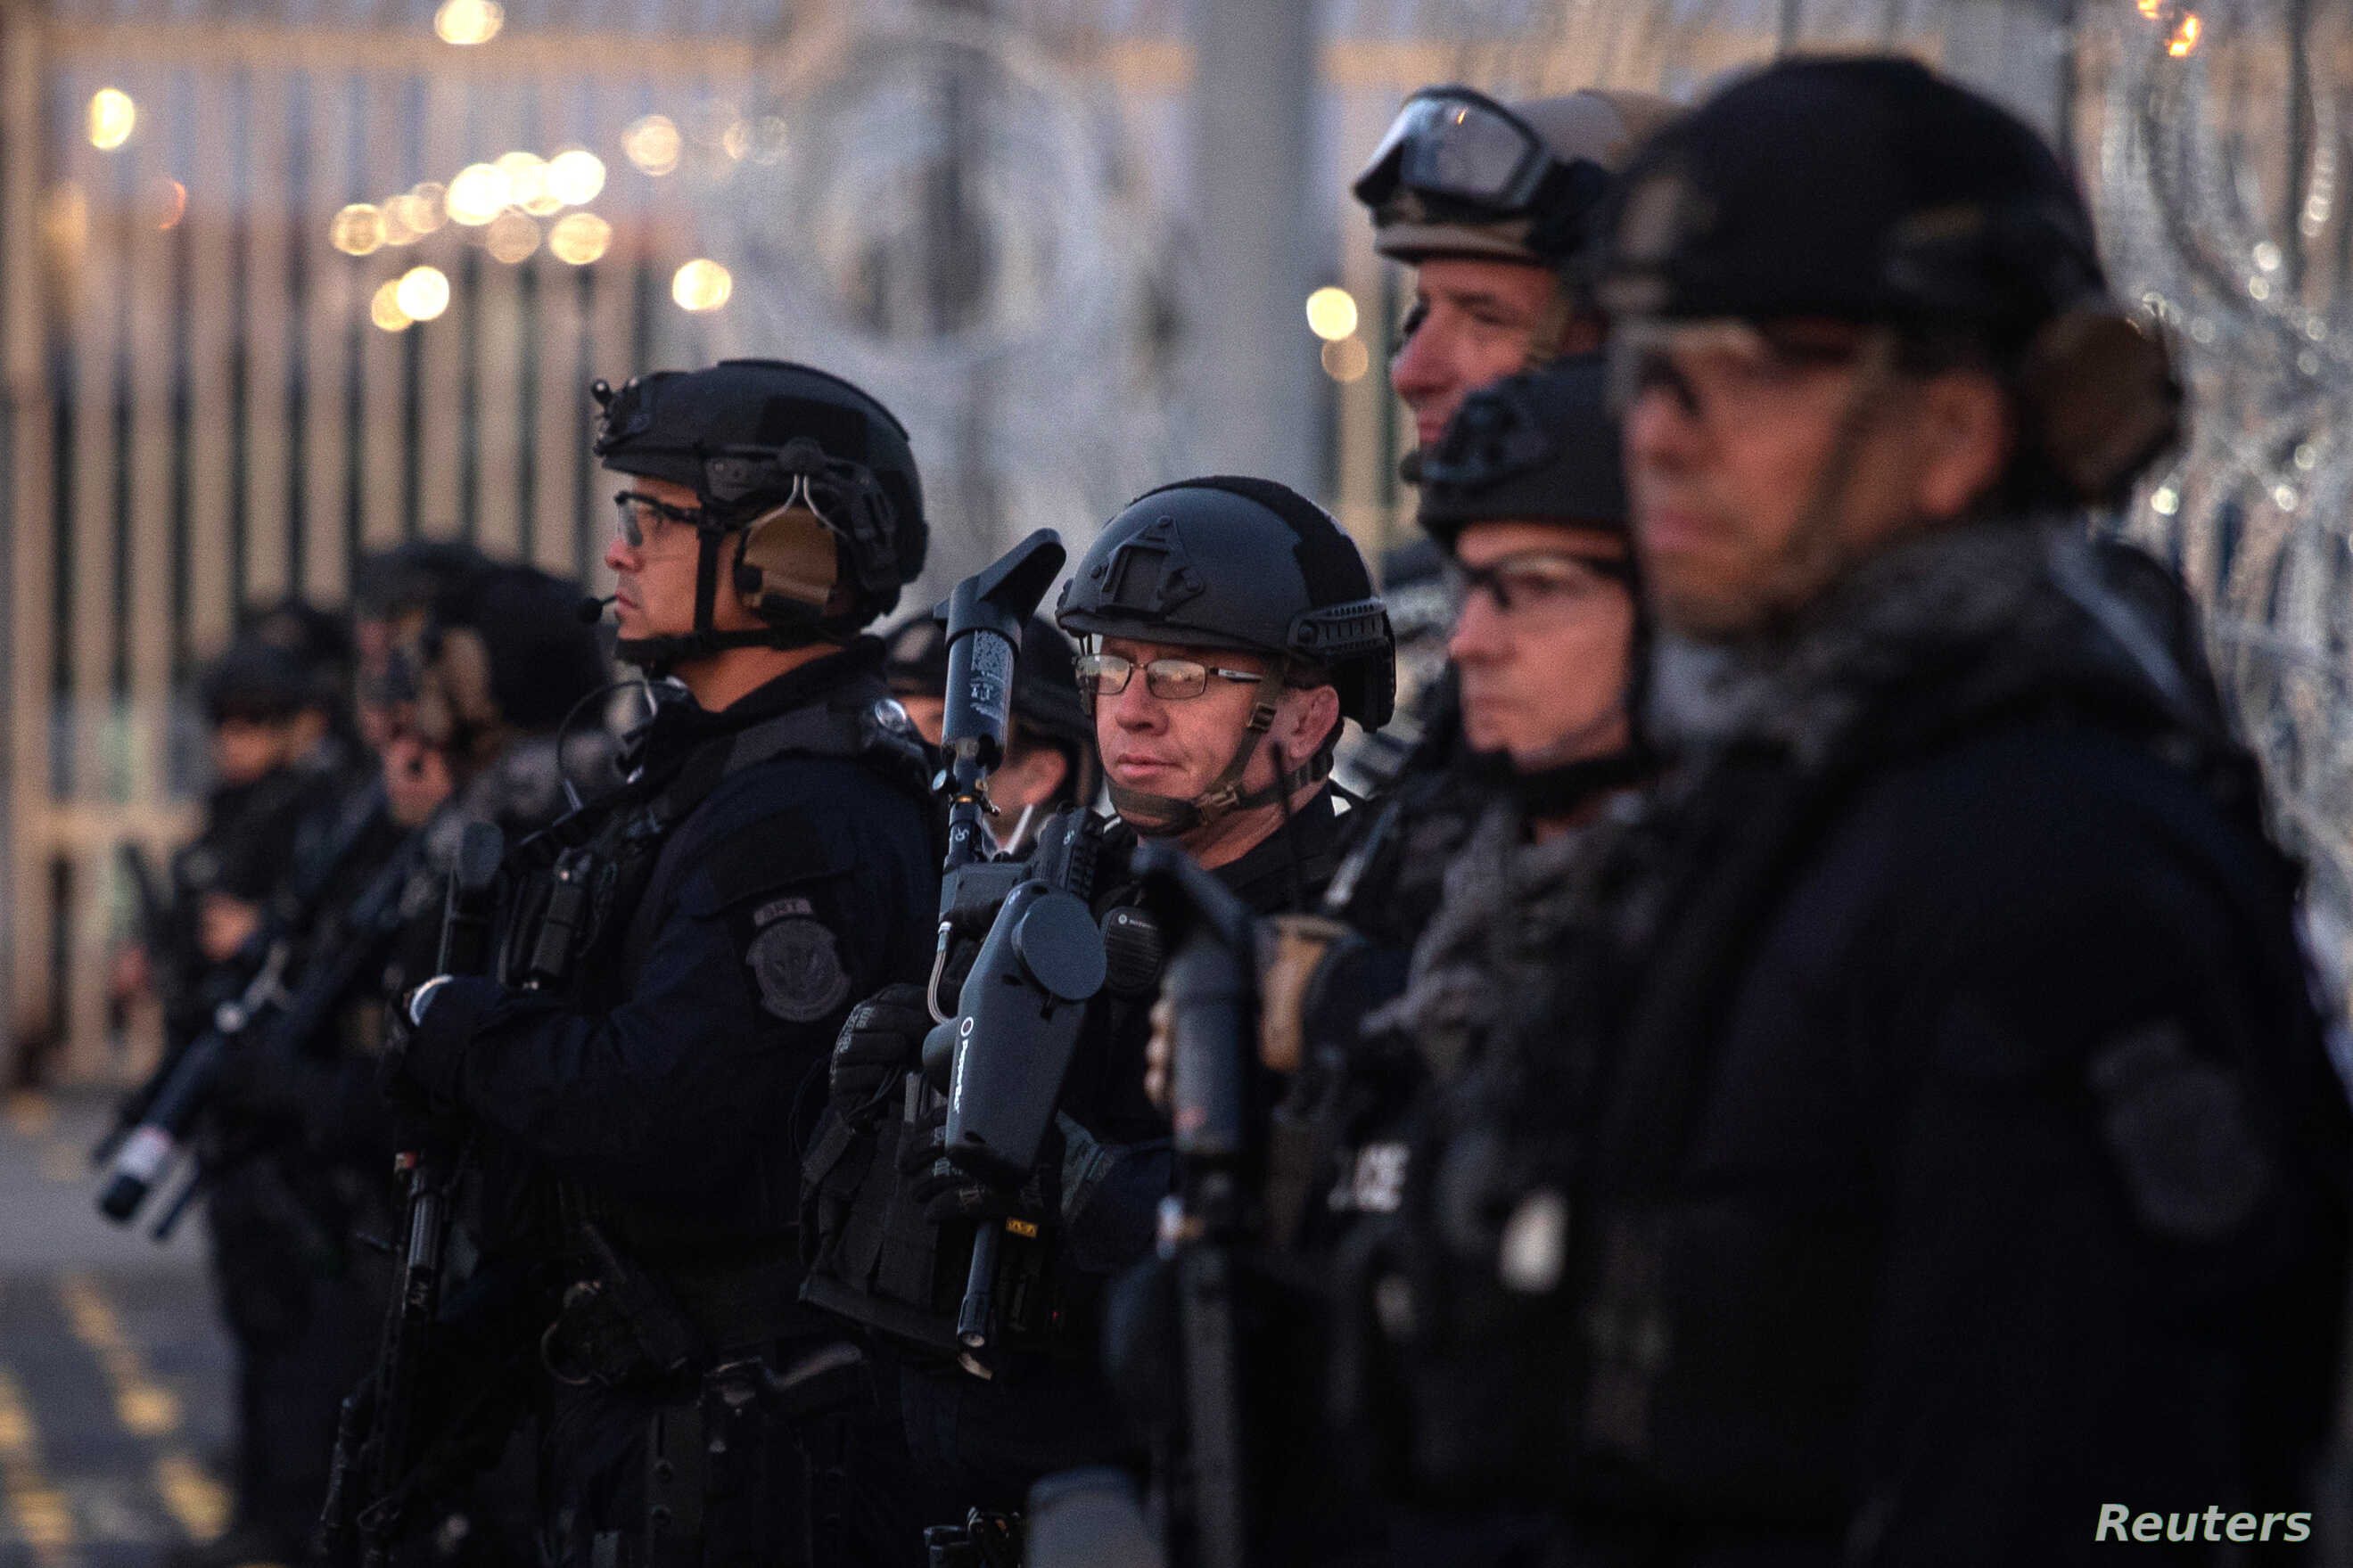 U.S. Customs and Border Protection (CBP) Special Response Team (SRT) officers stand guard at the San Ysidro Port of Entry after the land border crossing was temporarily closed to traffic from Tijuana, Mexico, Nov. 19, 2018.